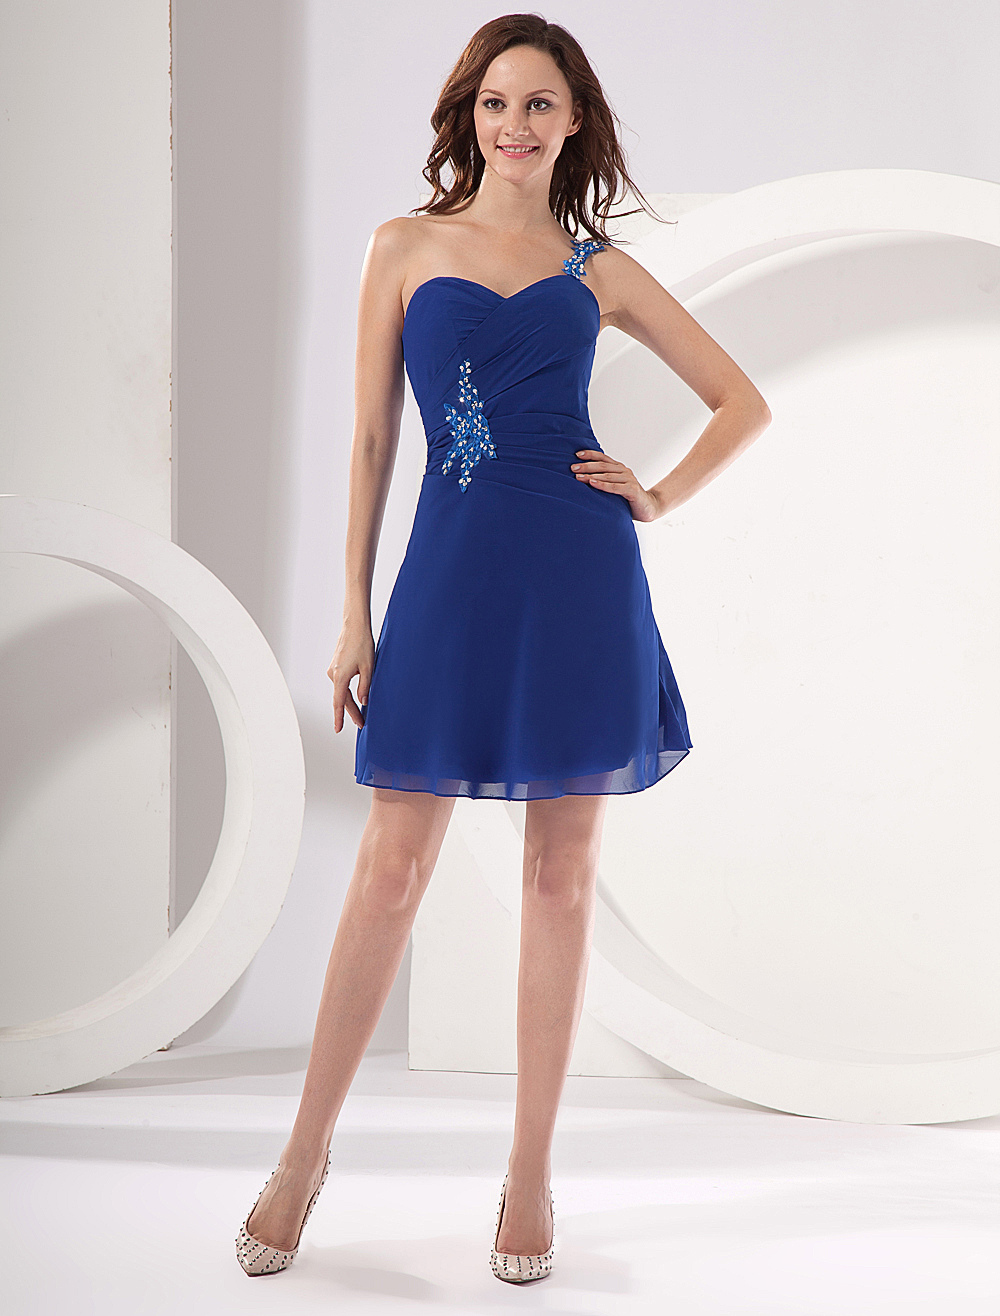 best service dd0a3 5c288 Abito homecoming blu royal elegante in chiffon floreale corto